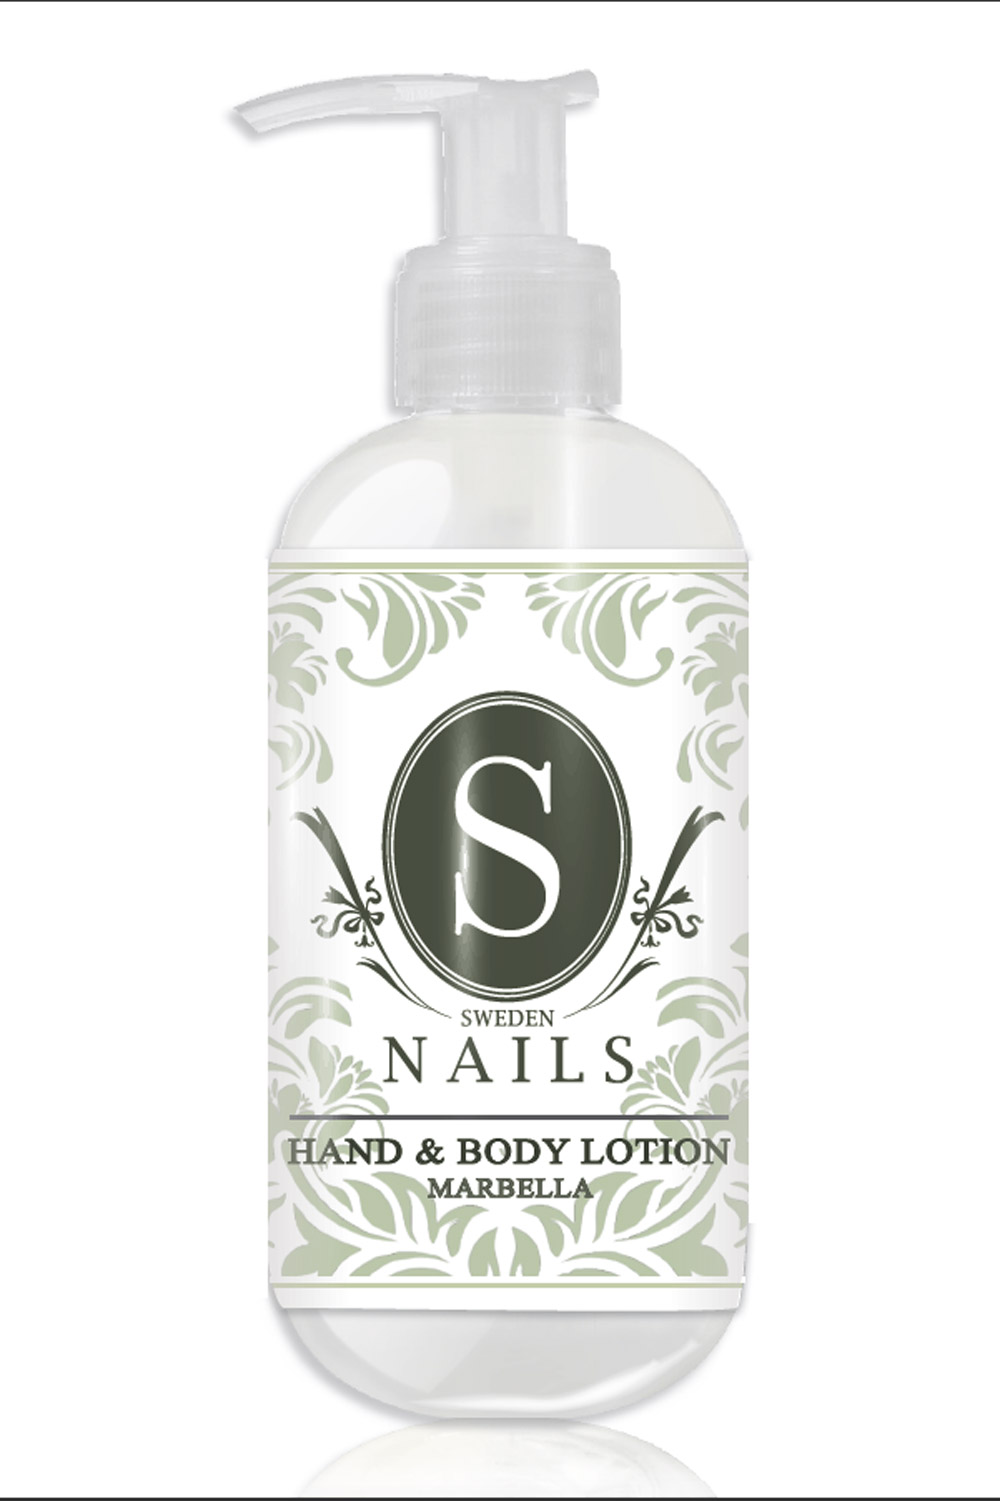 Sweden Nails Lotions